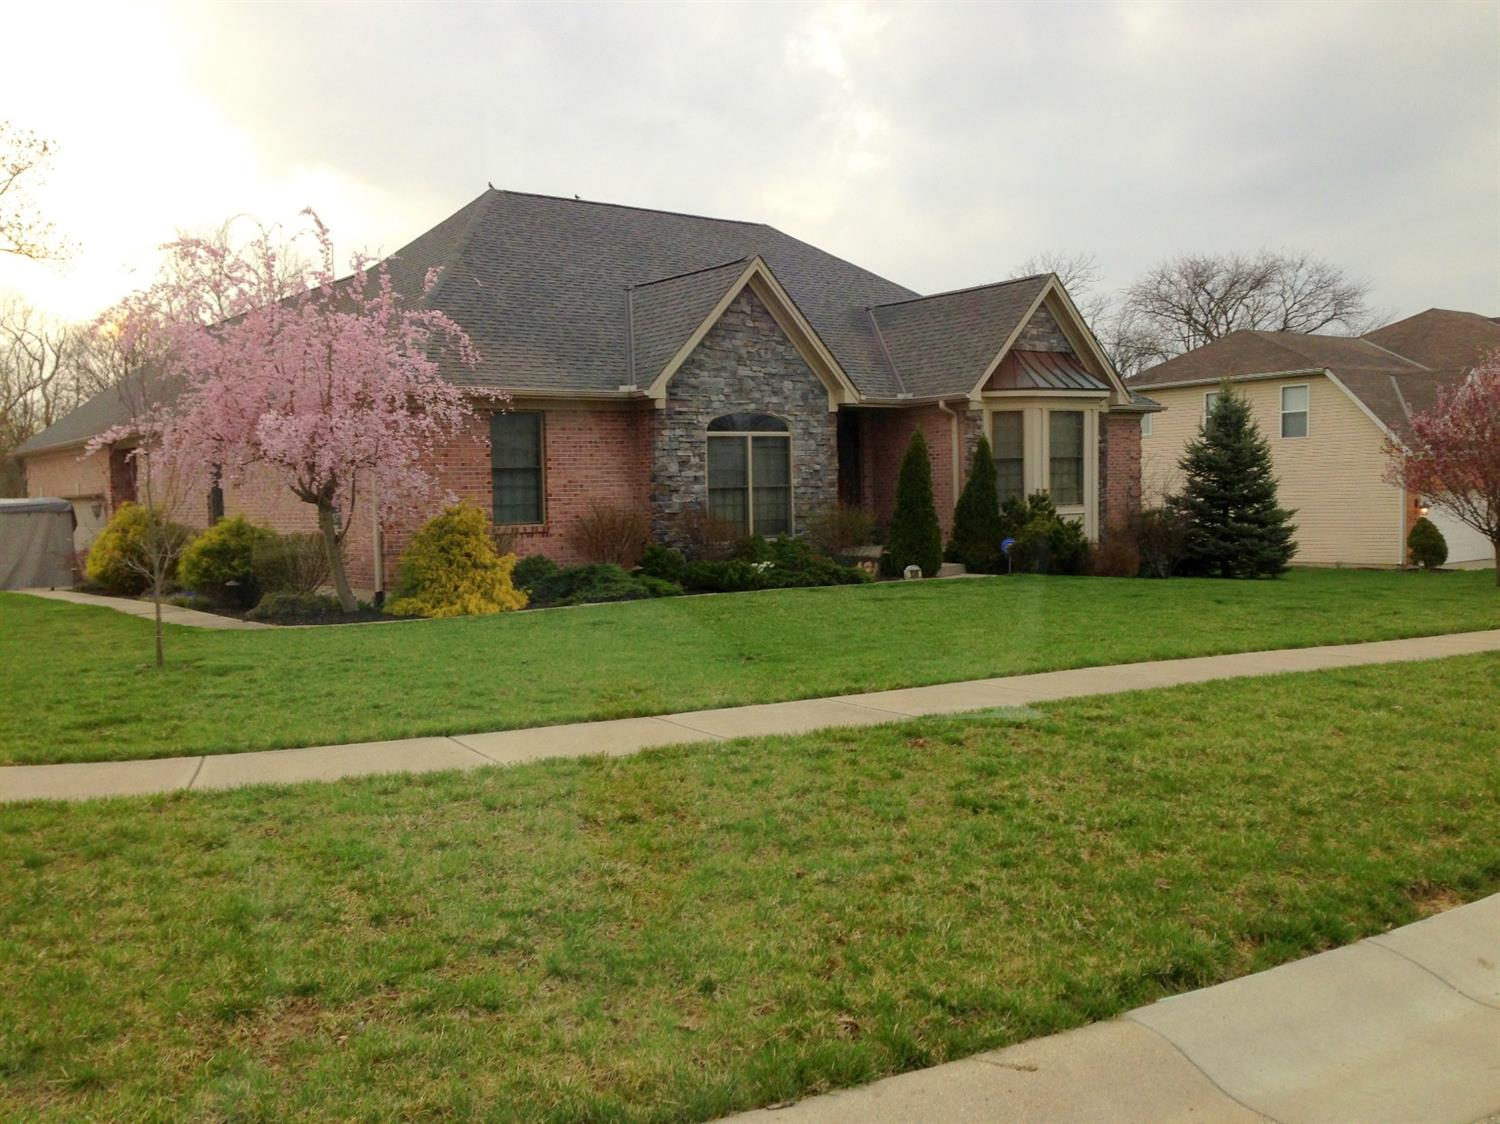 Property for sale at 8580 Kates Way, West Chester,  Ohio 45069